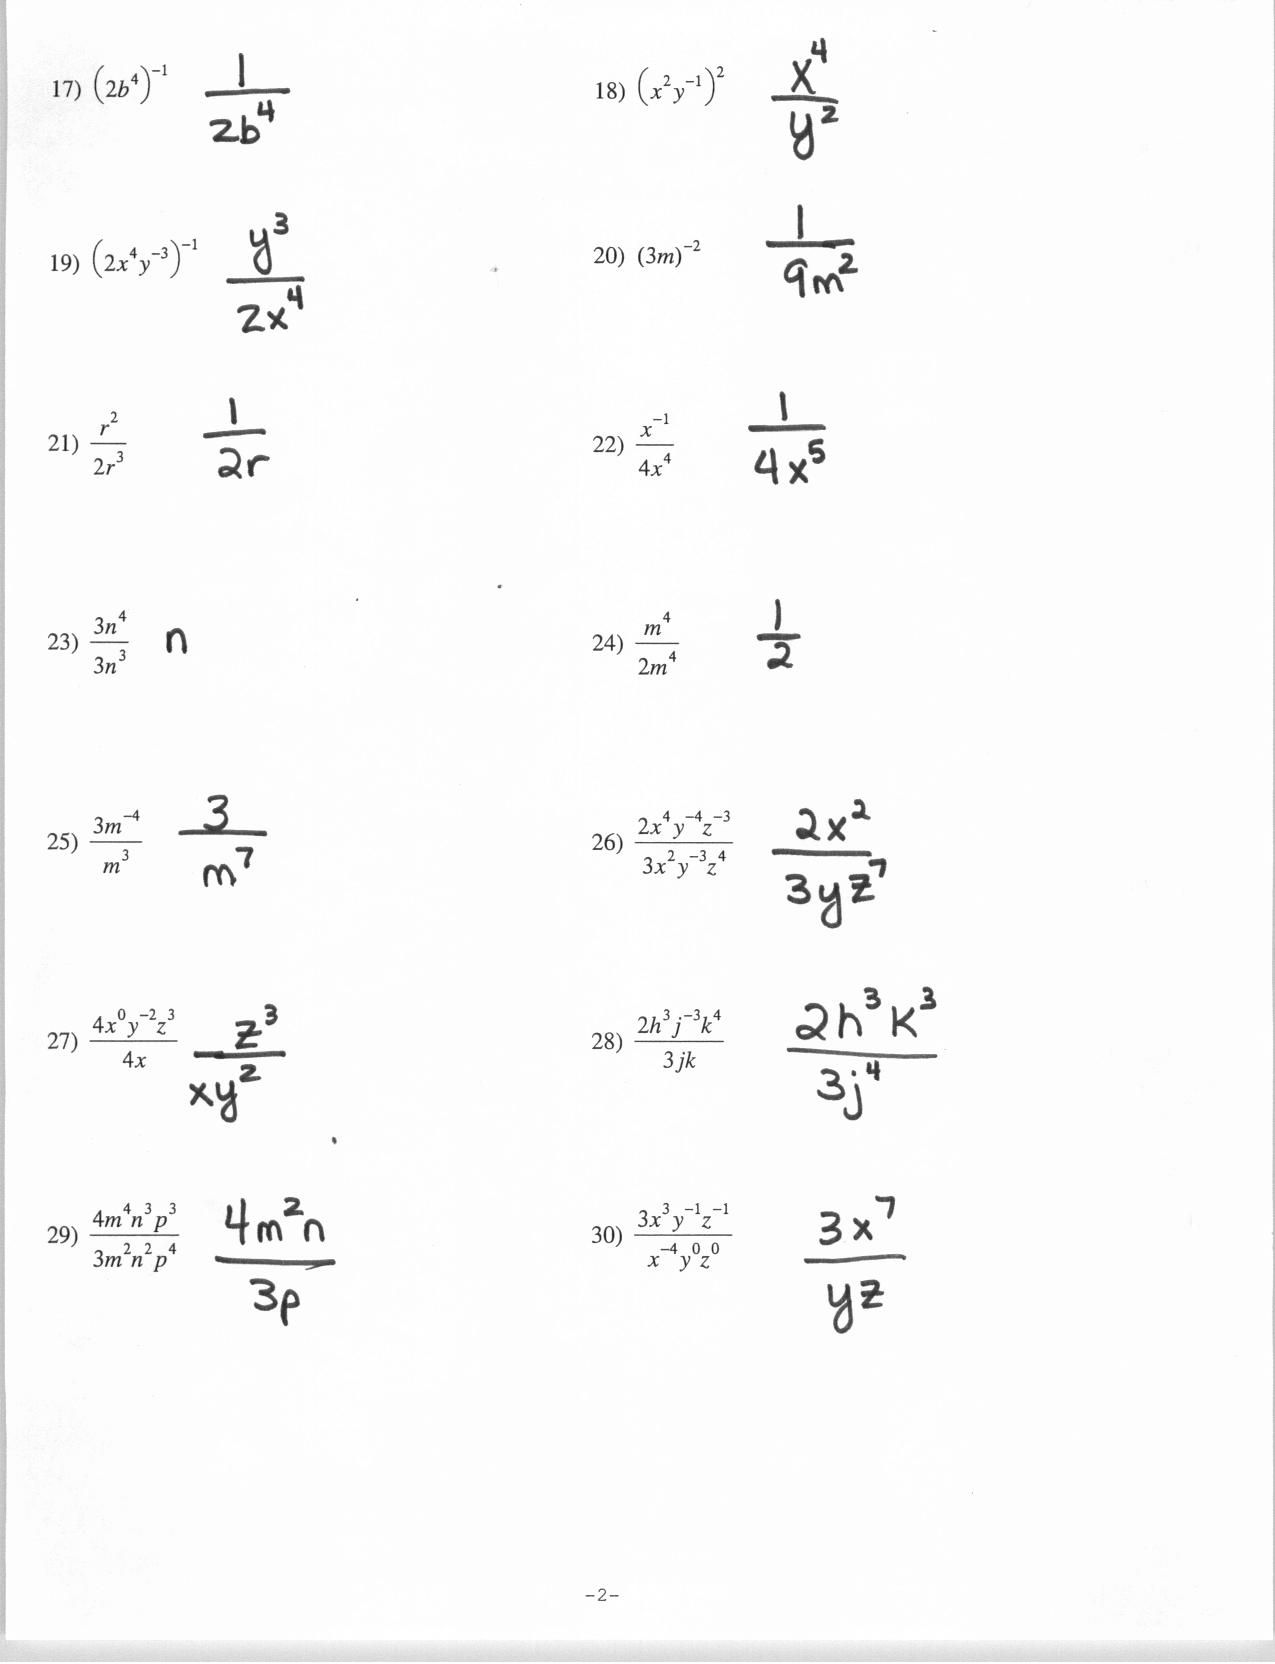 Uncategorized Rational Exponents Worksheet exponents worksheets answers rational with pictures exponent beatlesblogcarnival